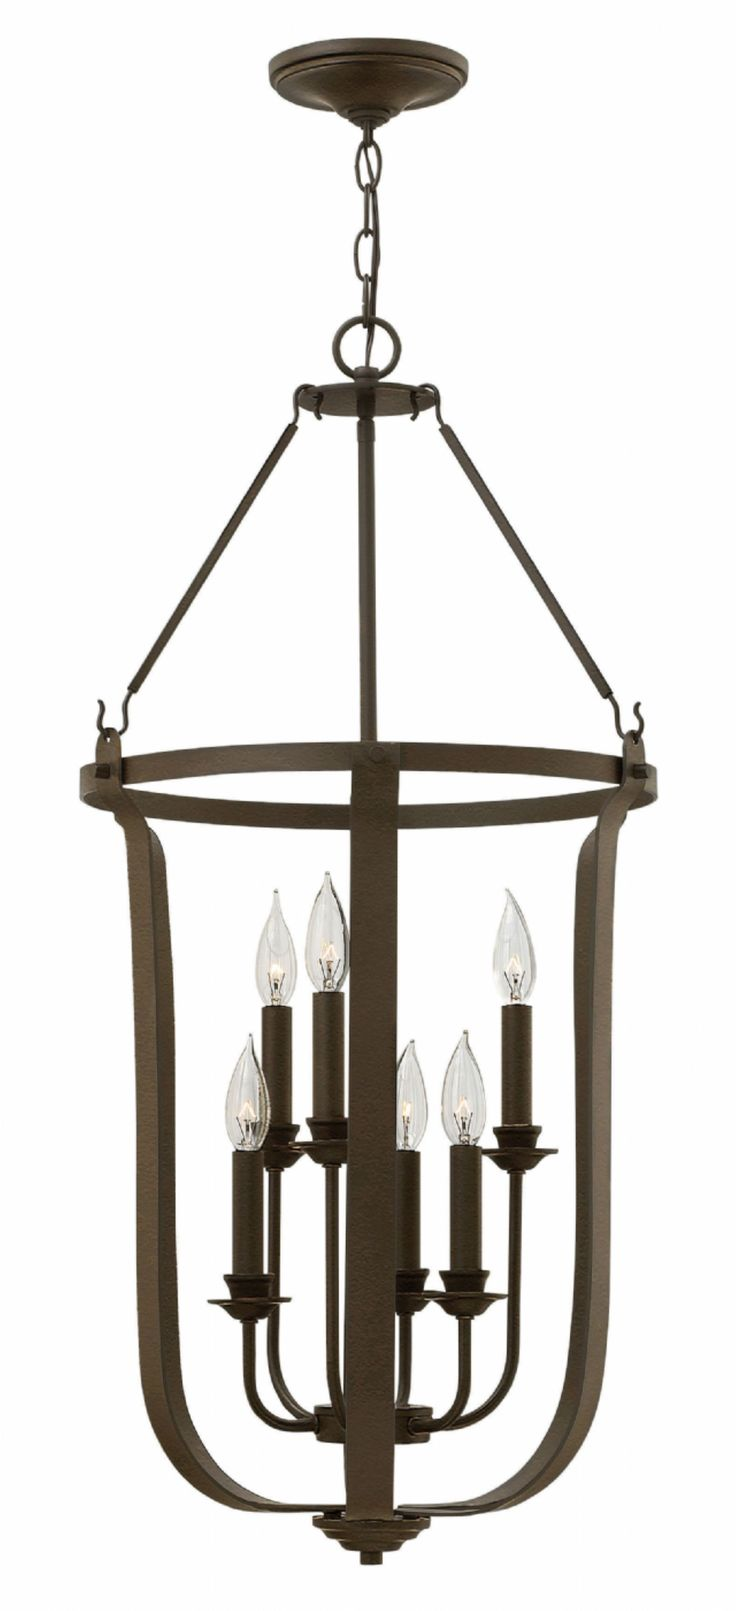 buy the hinkley lighting textured bronze direct shop for the hinkley lighting textured bronze 6 light full sized foyer pendant from the fenmore collection